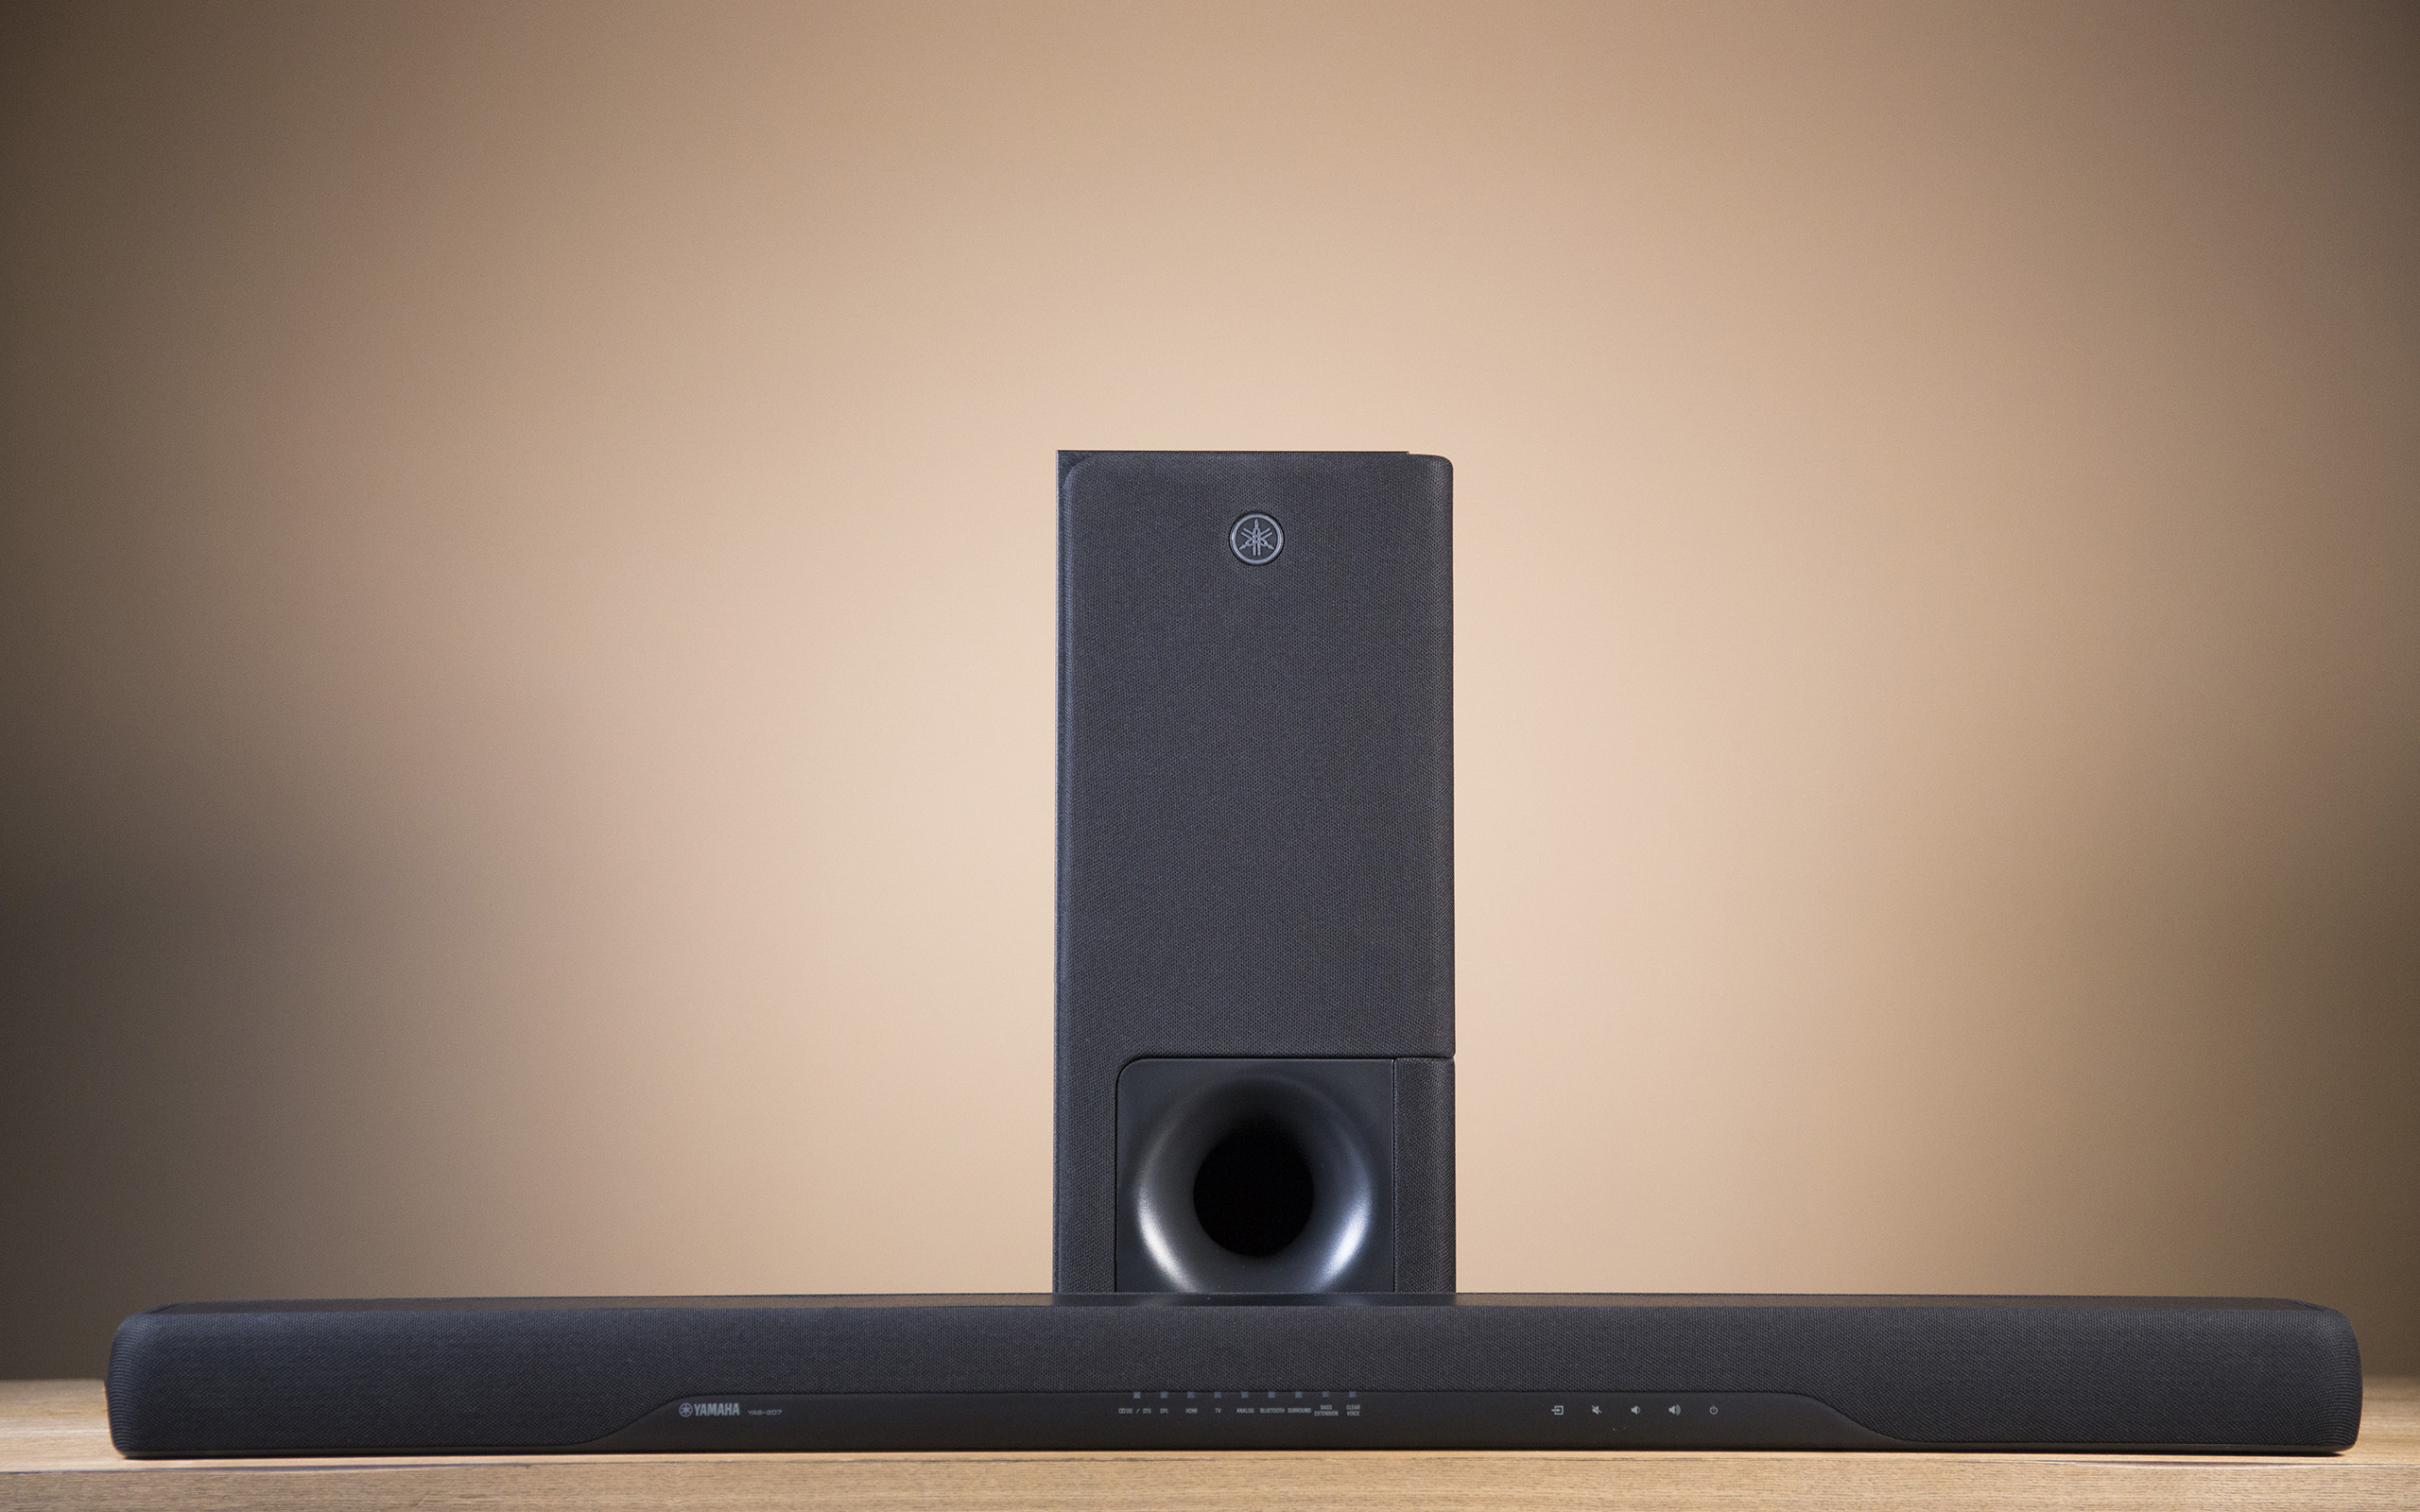 Best Sound Bars of 2019 - Dialogue, Bass and Surround Sound